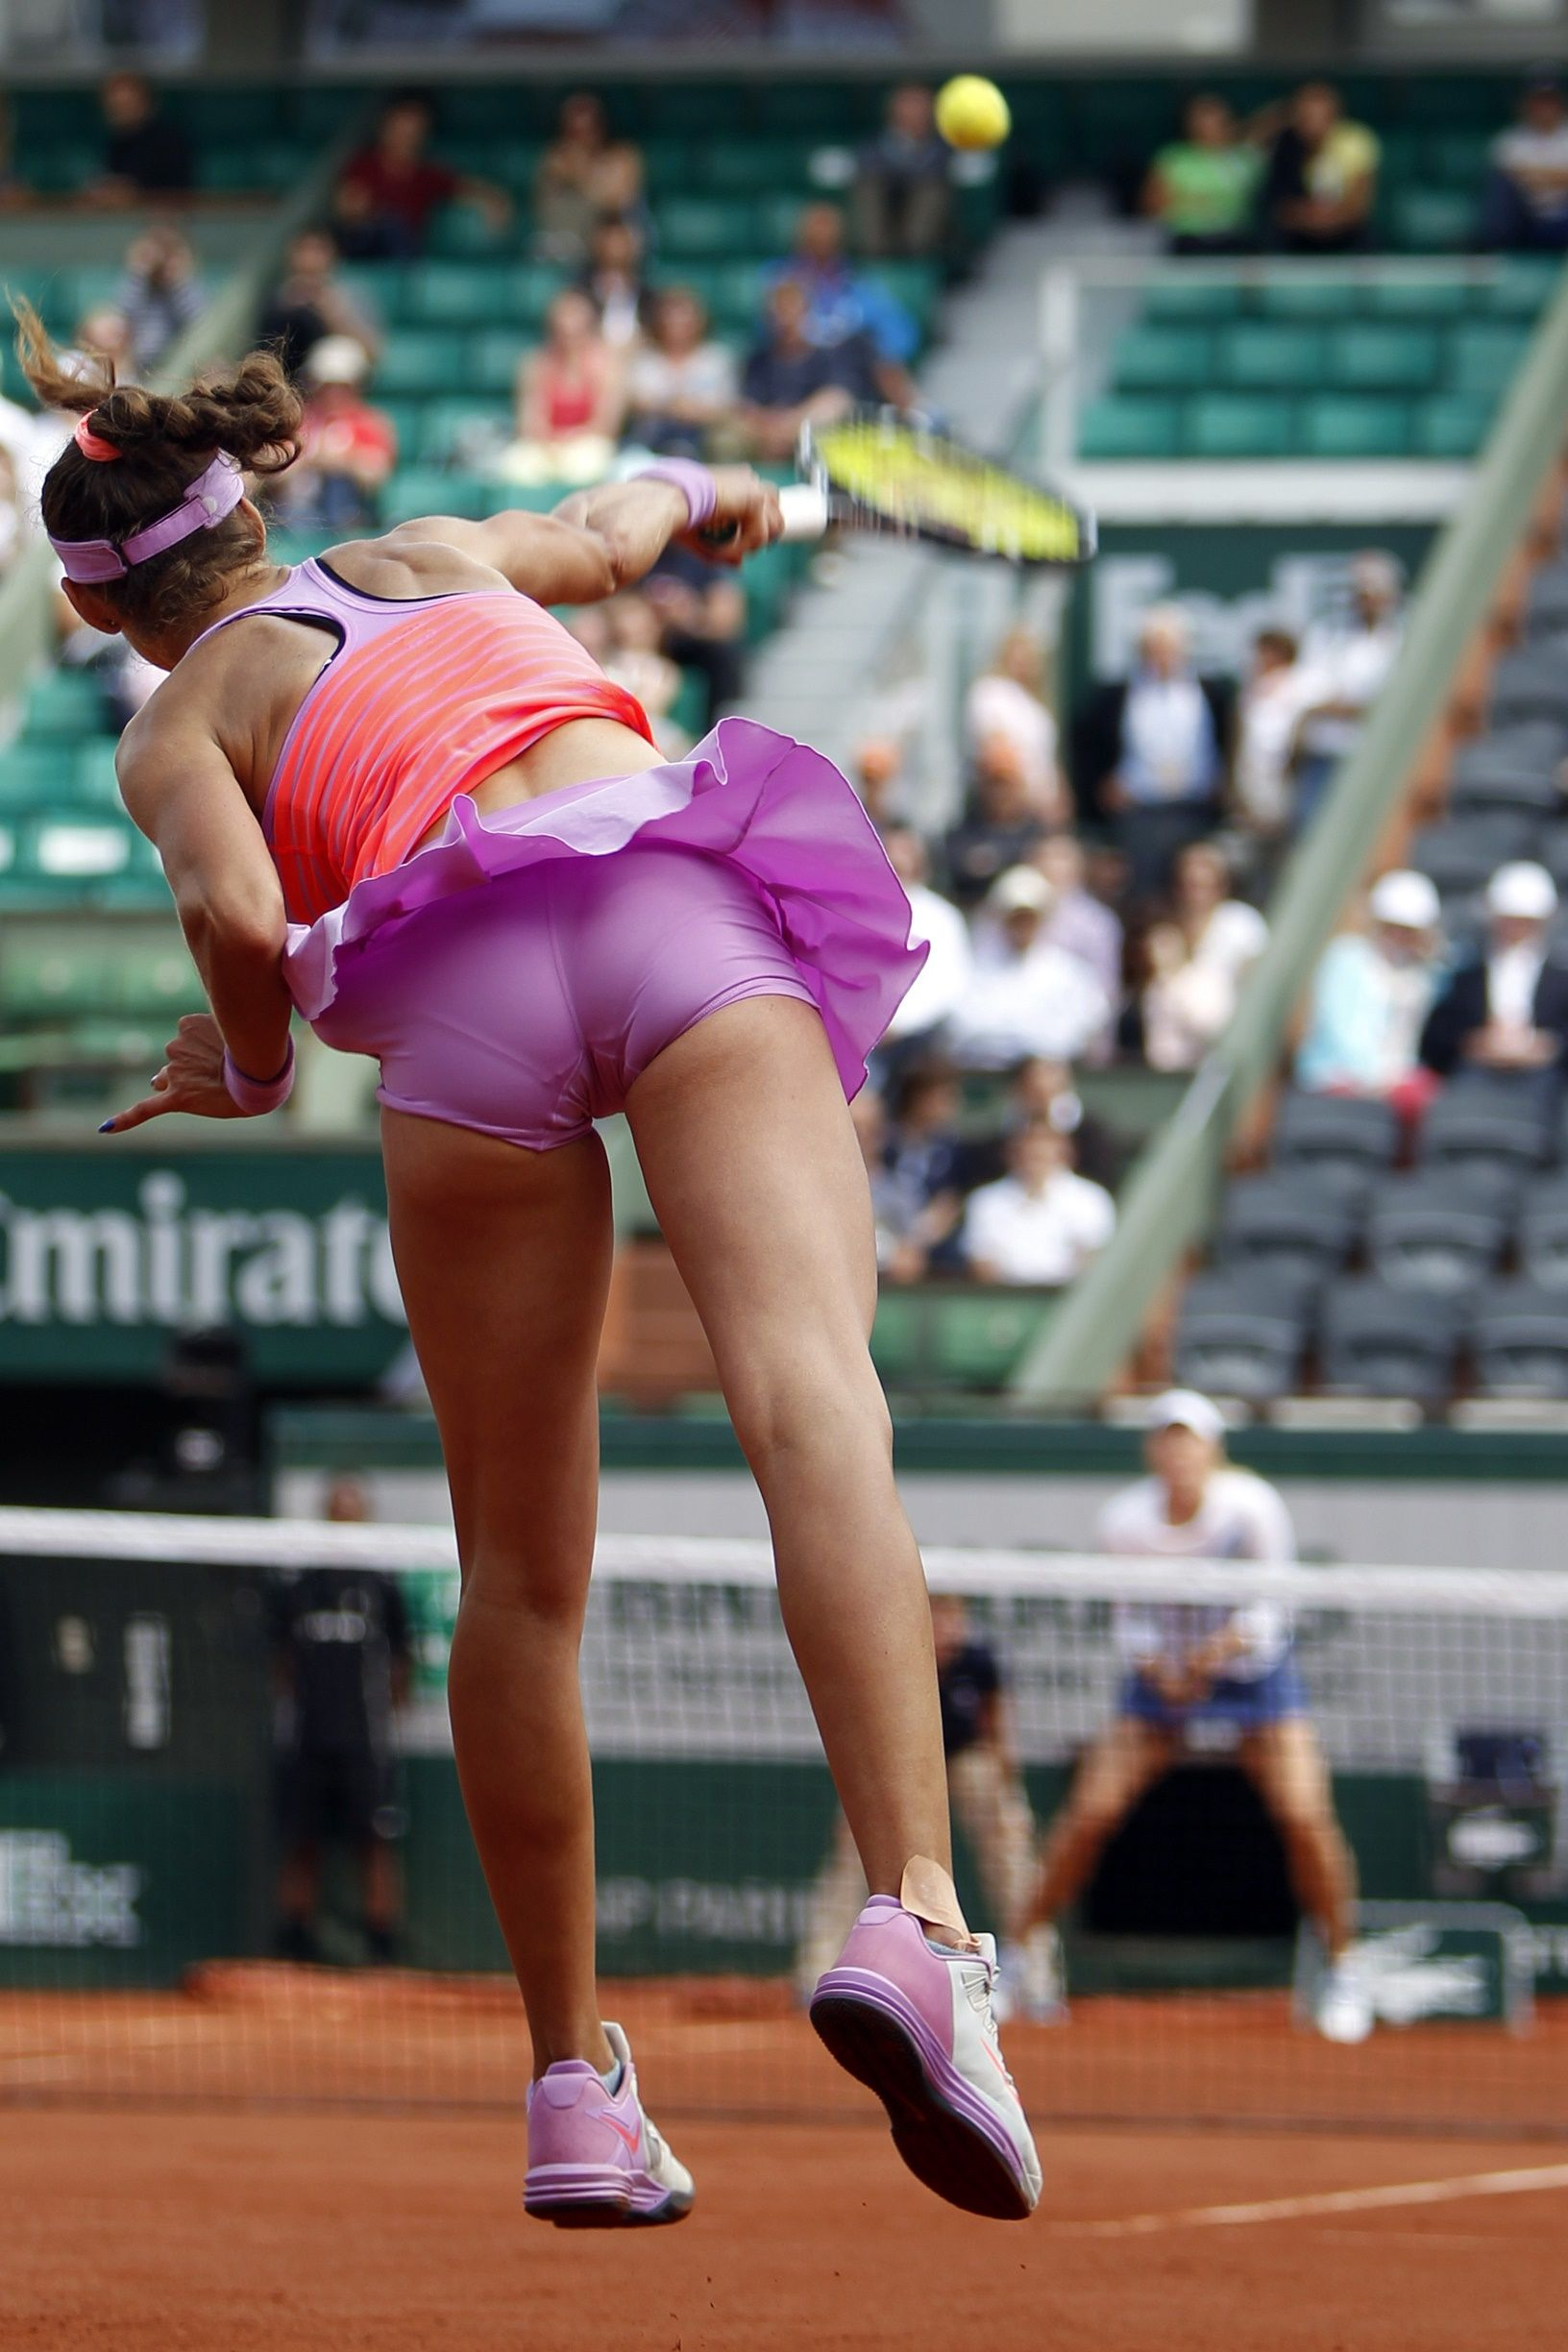 Alize cornet upskirt discuss impossible